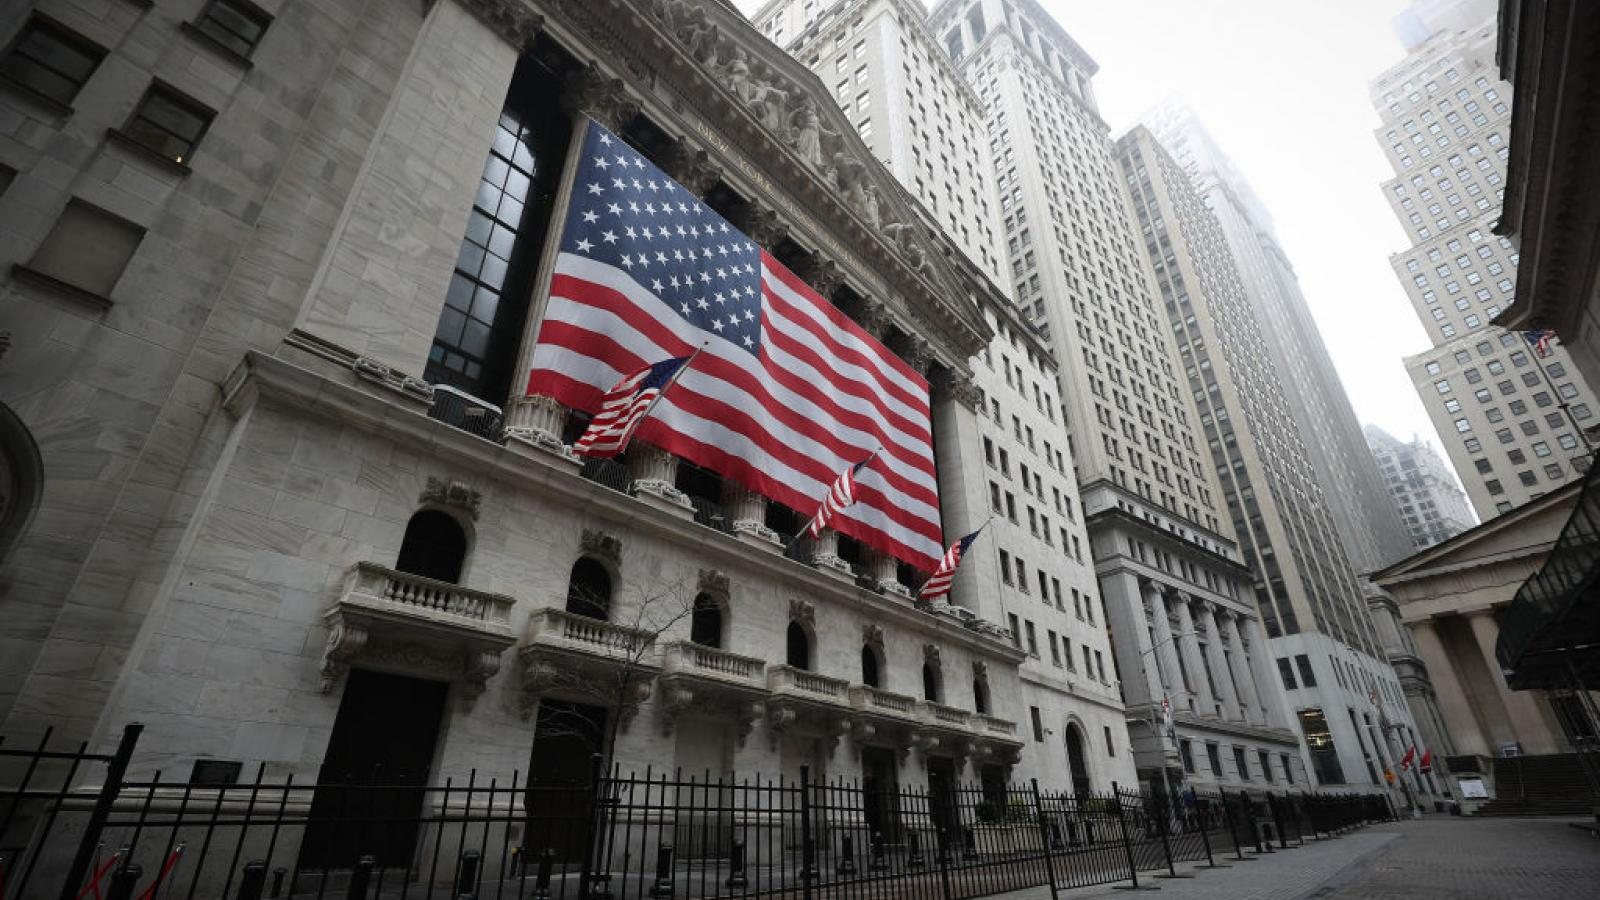 New York Stock Exchange building on March 29, 2020